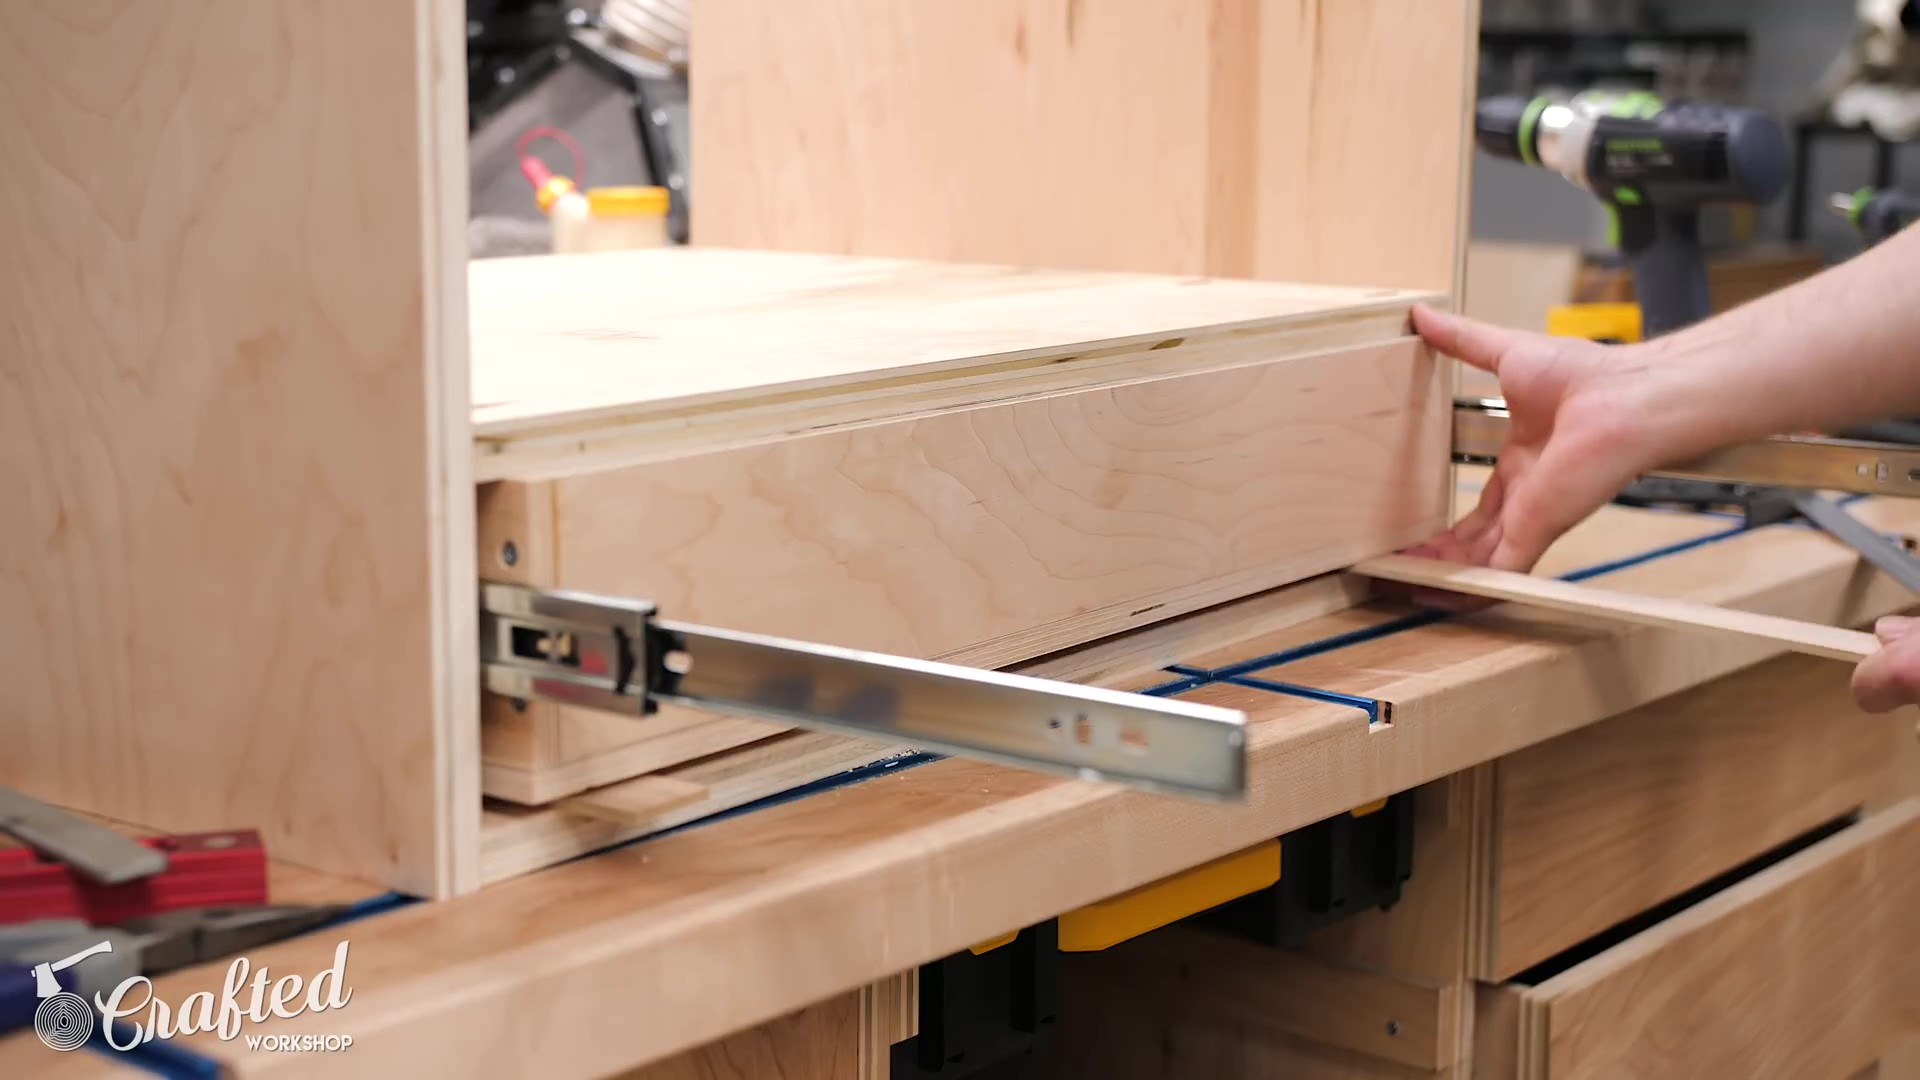 Installing the Drawer